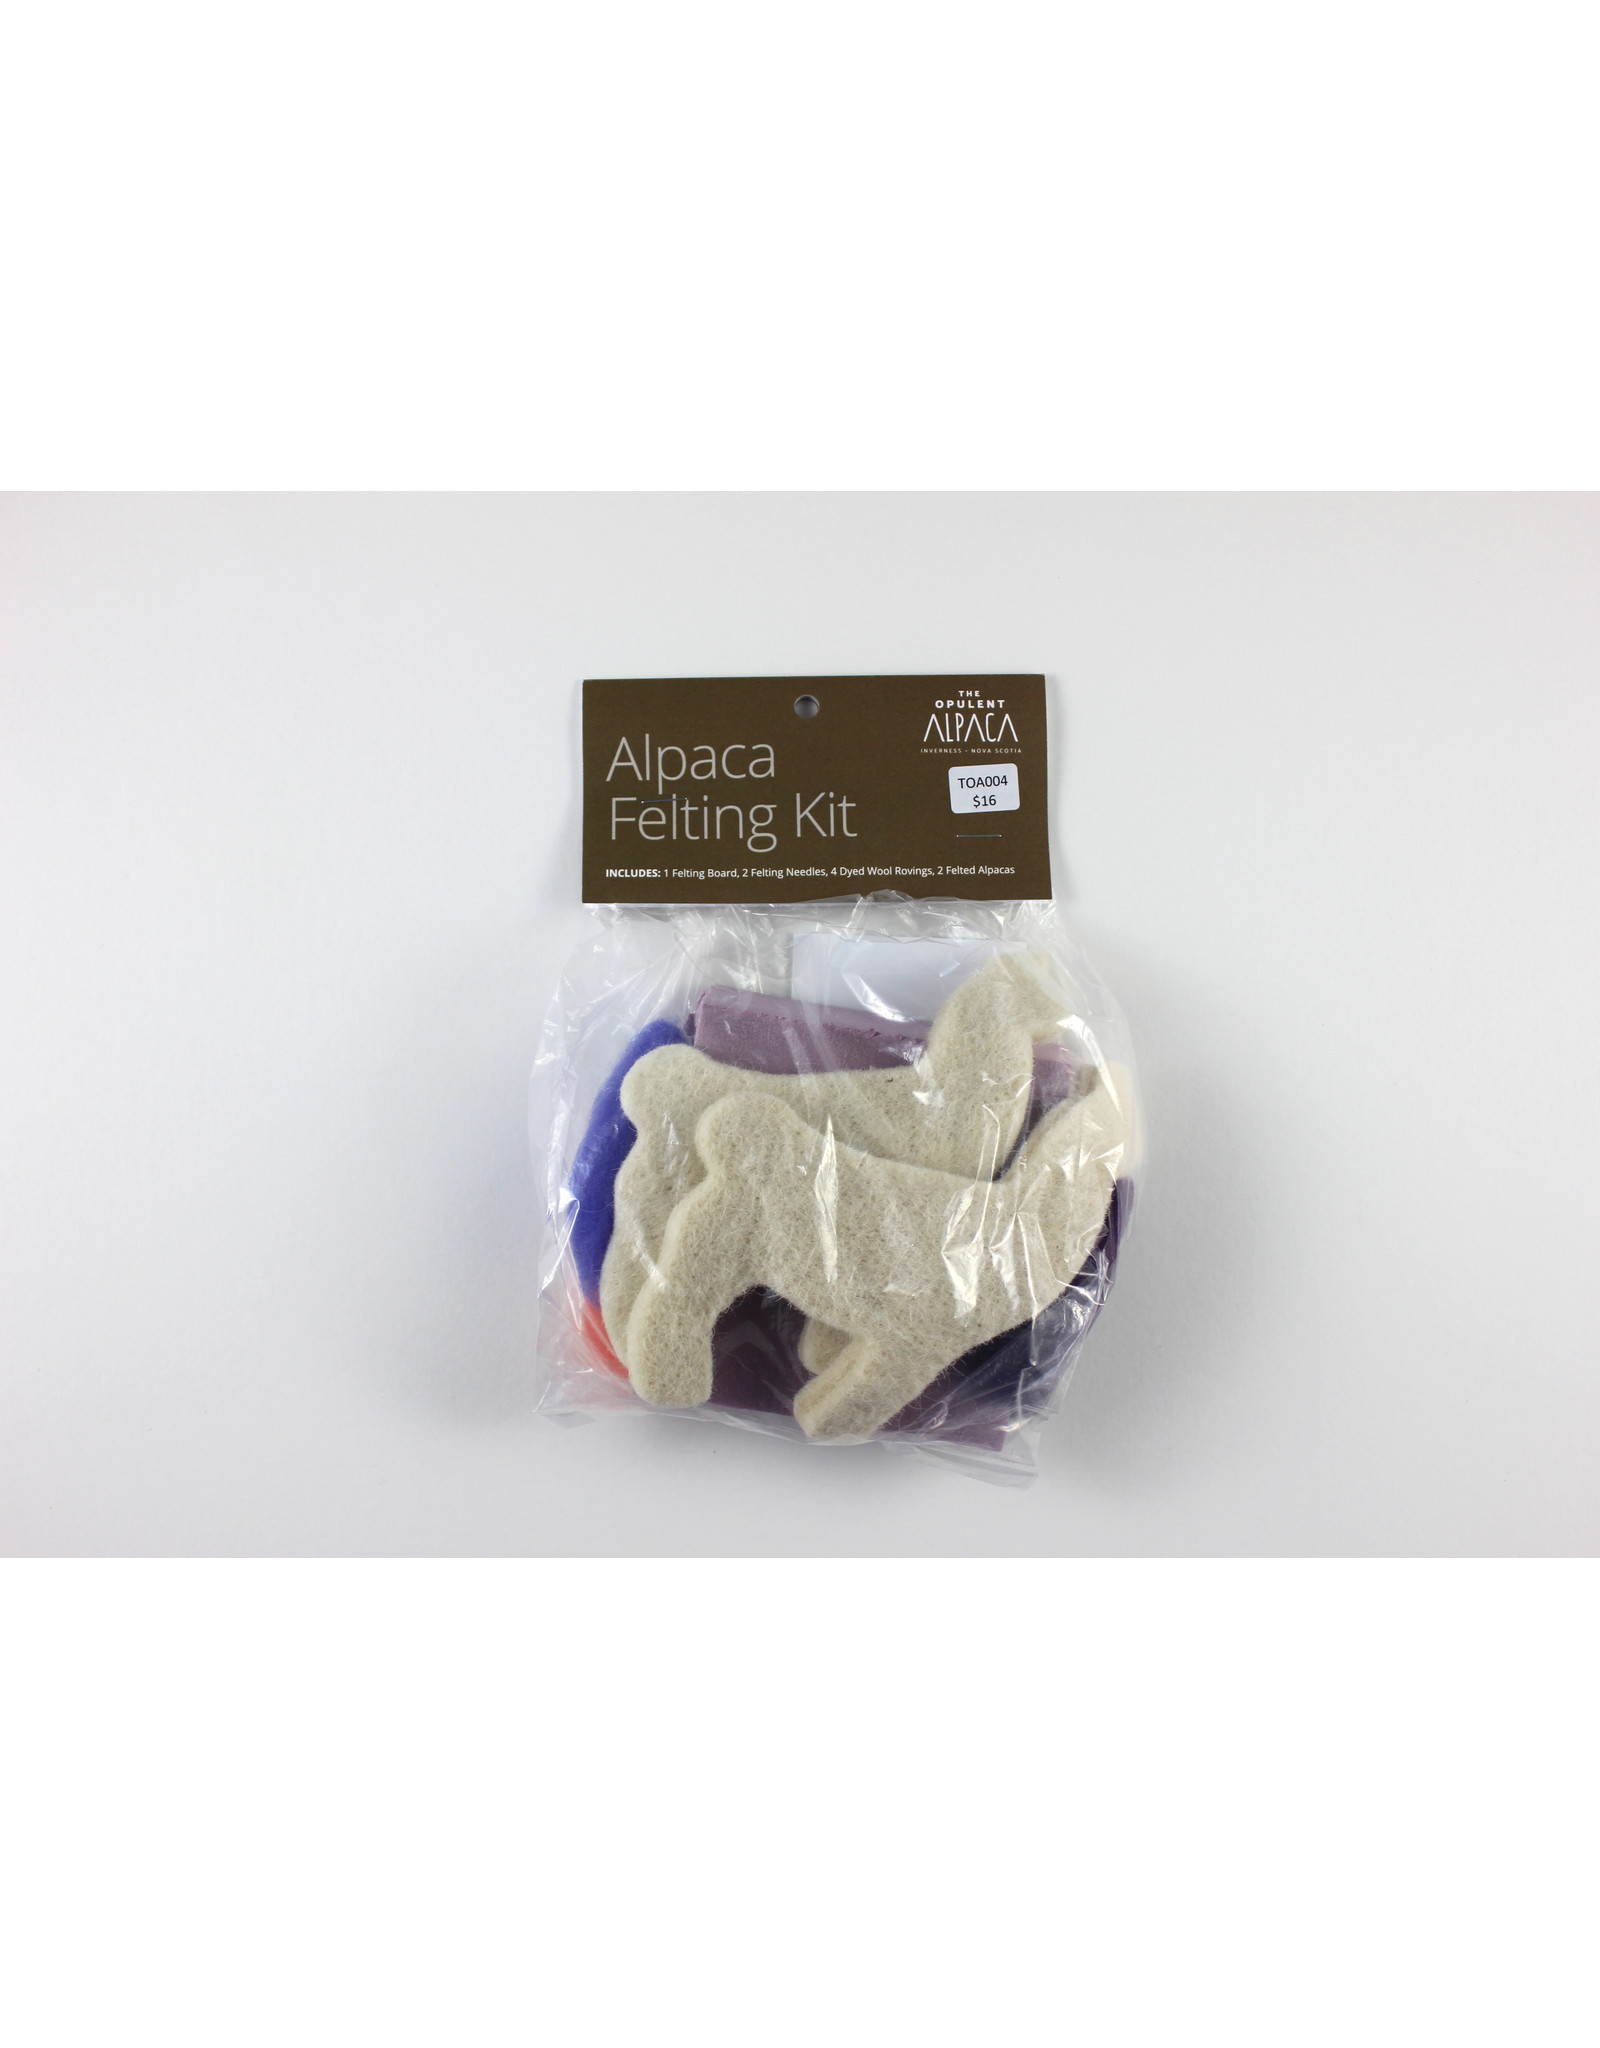 The Opulent Alpaca Alpaca Felting Kit by The Opulent Alpaca